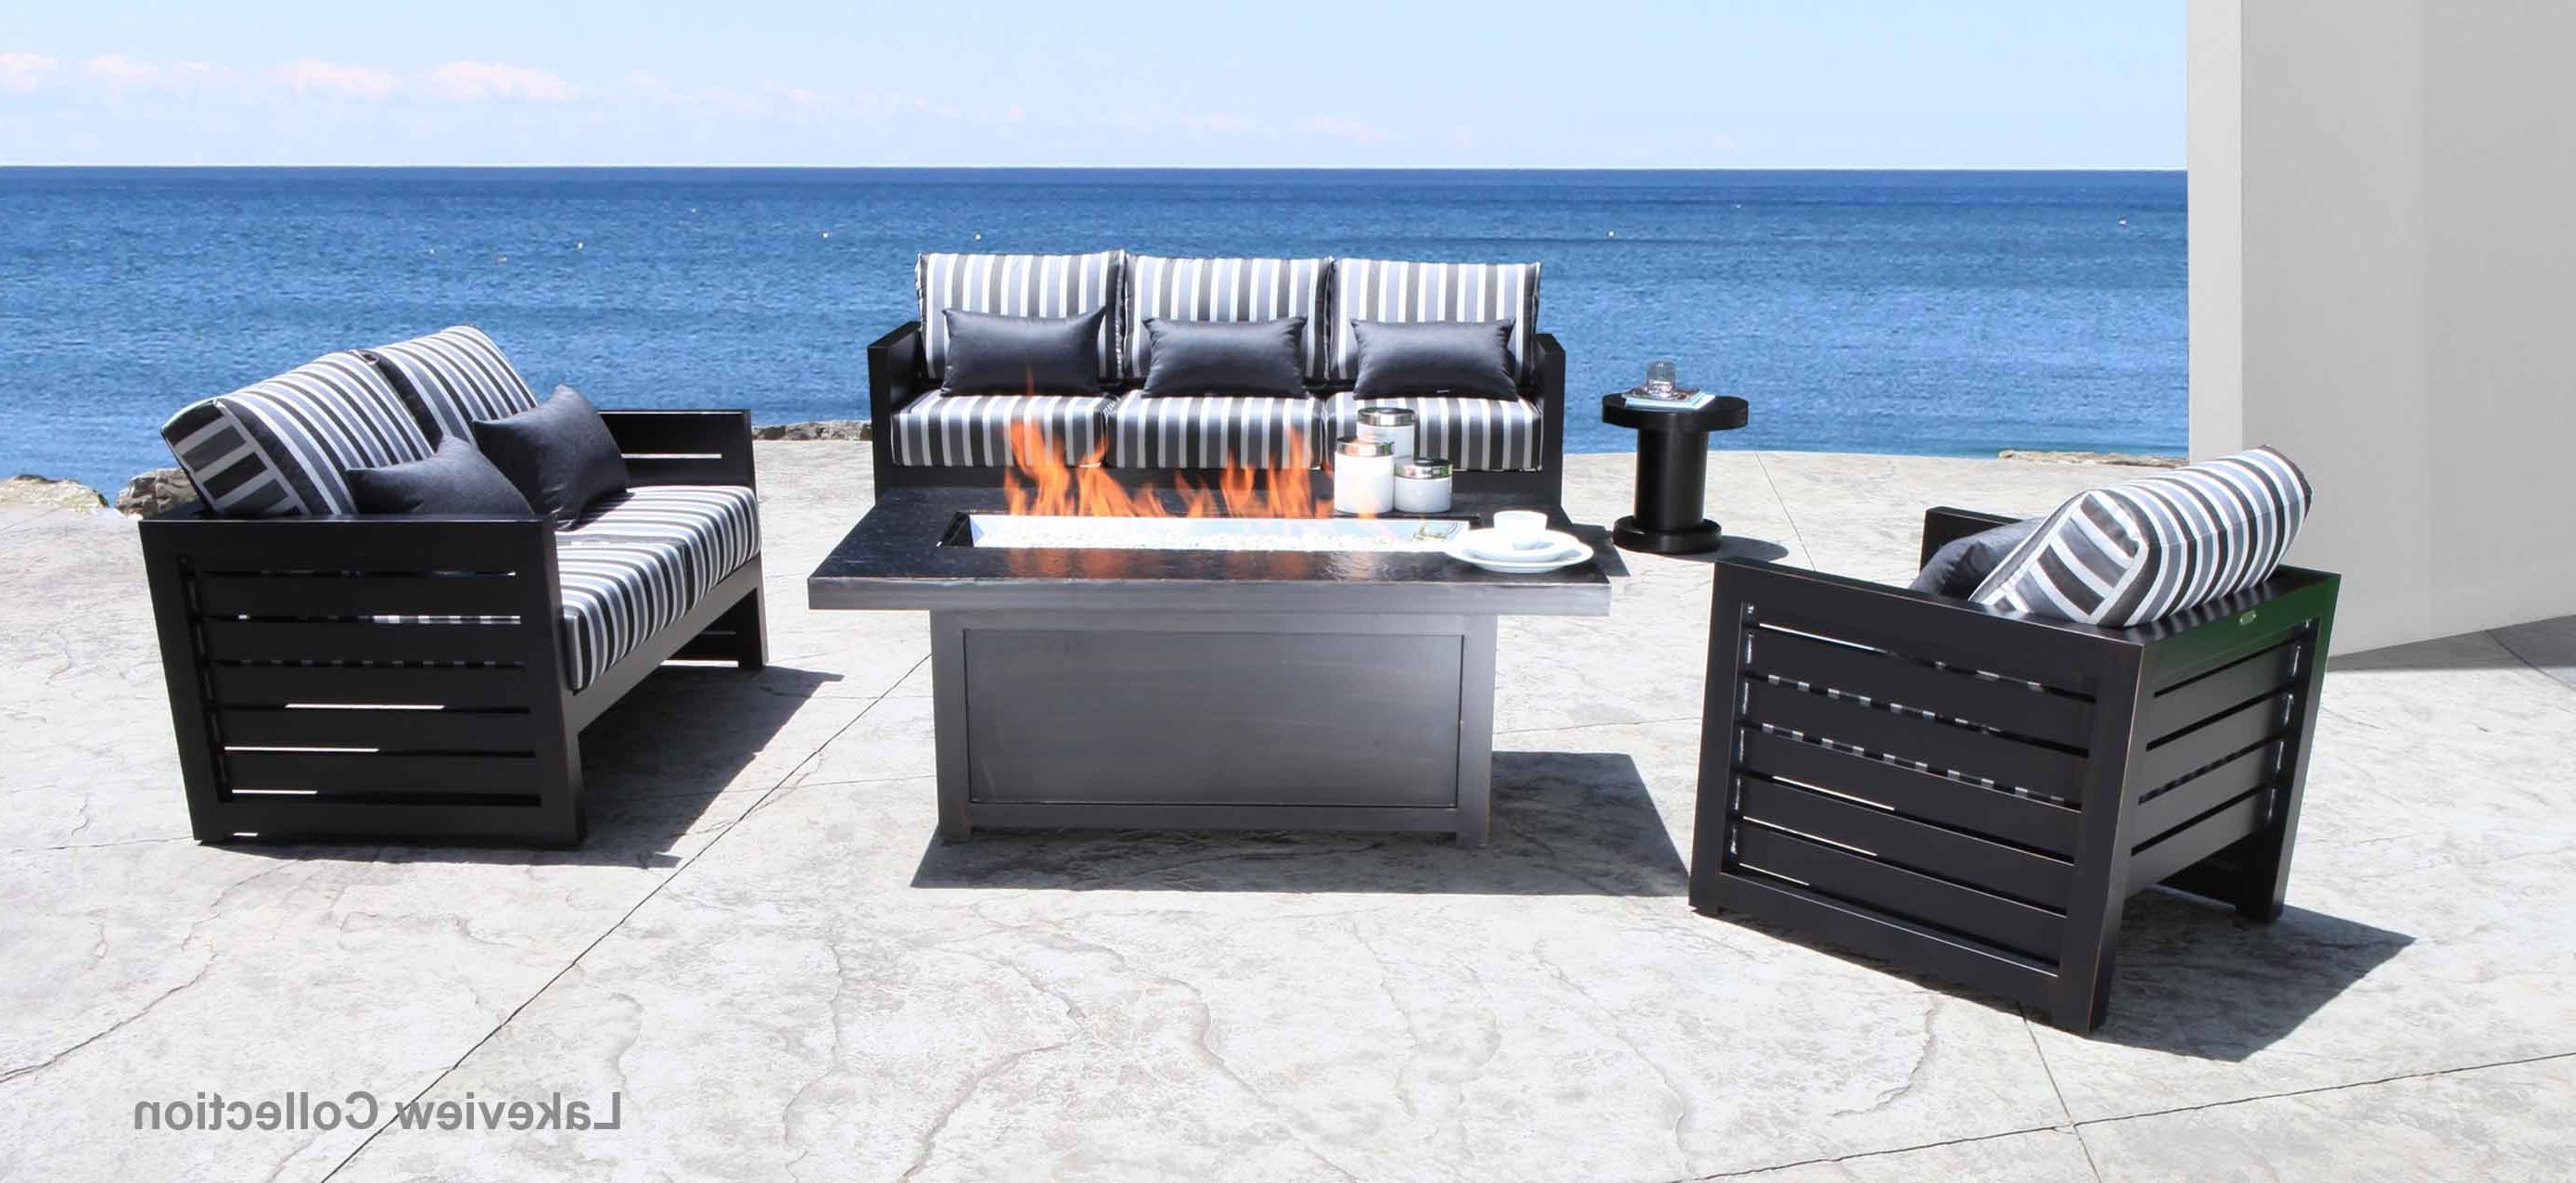 Shop Patio Furniture At Cabanacoast® Regarding Most Recently Released Modern Patio Conversation Sets (View 17 of 20)